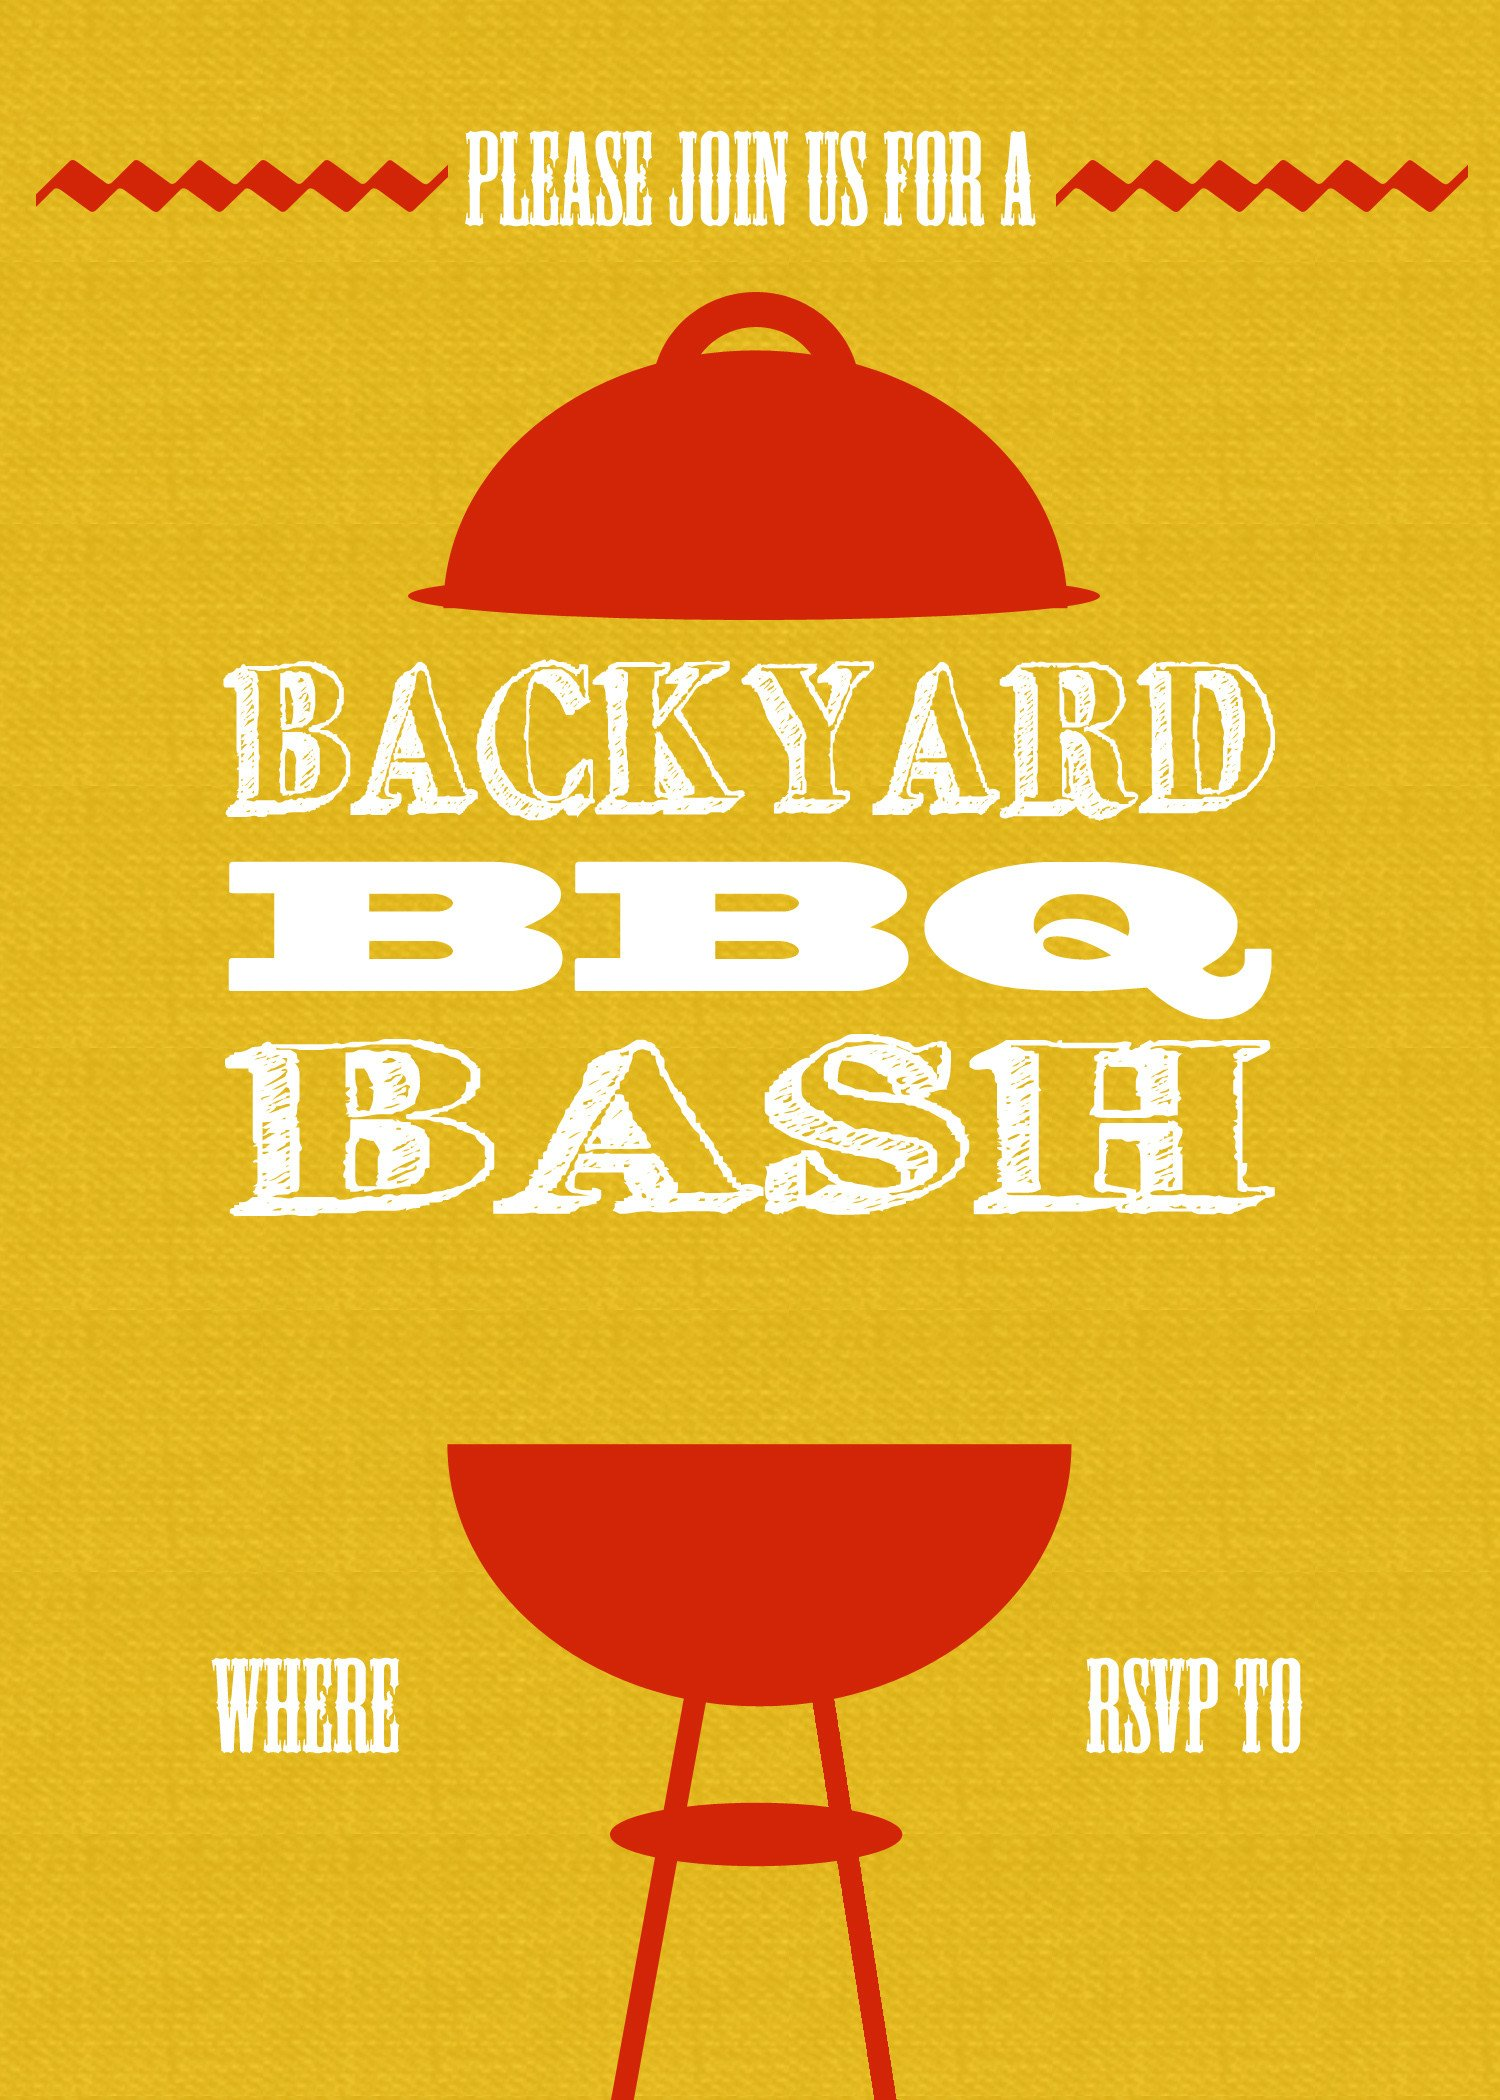 Free Bbq Invitation Template Diy Printable Backyard Bbq Bash Invite